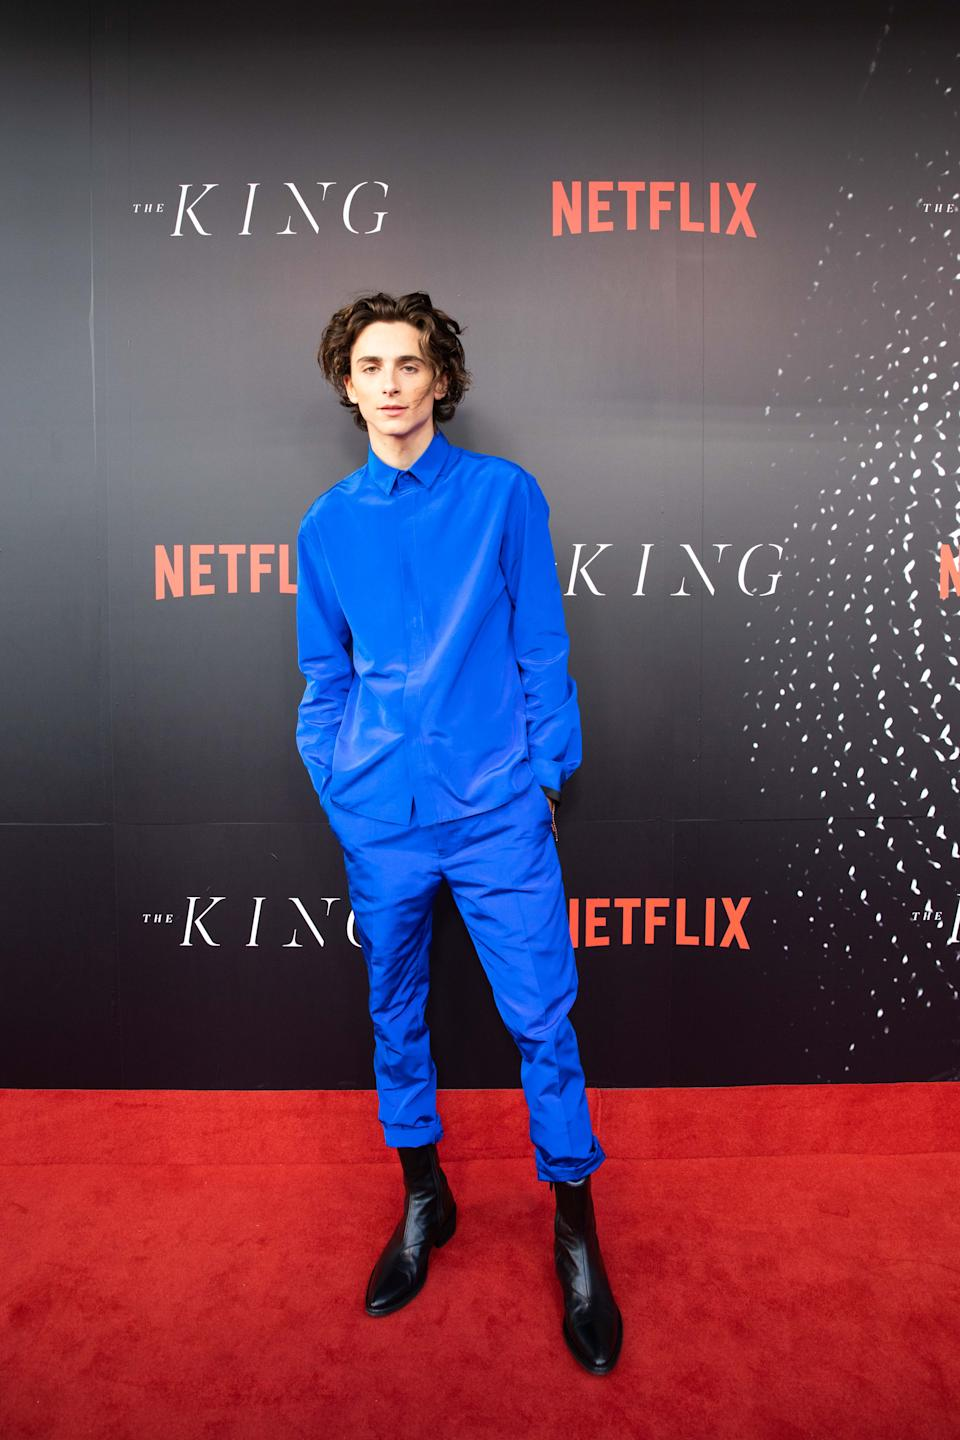 A photo of Timotheé Chalamet wearing a blue shirt and pants at The King Sydney premiere.